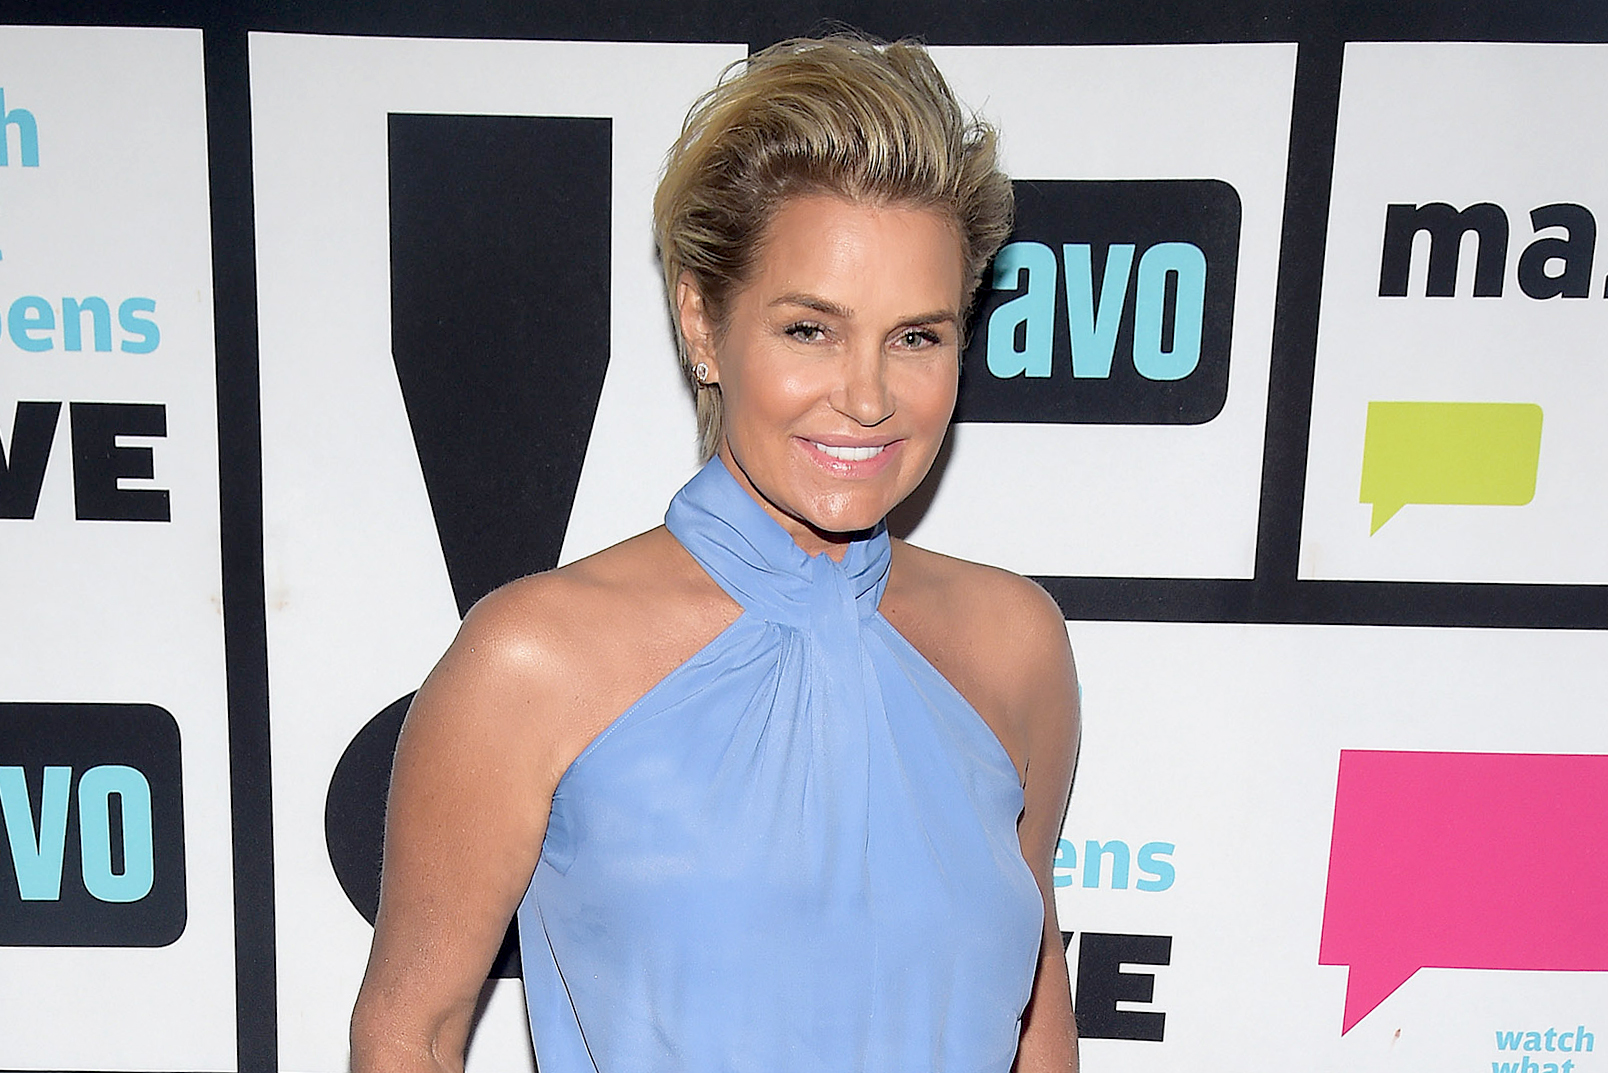 """Yolanda Hadid Is Writing a Book About Her """"Long Journey"""" with Lyme Disease"""